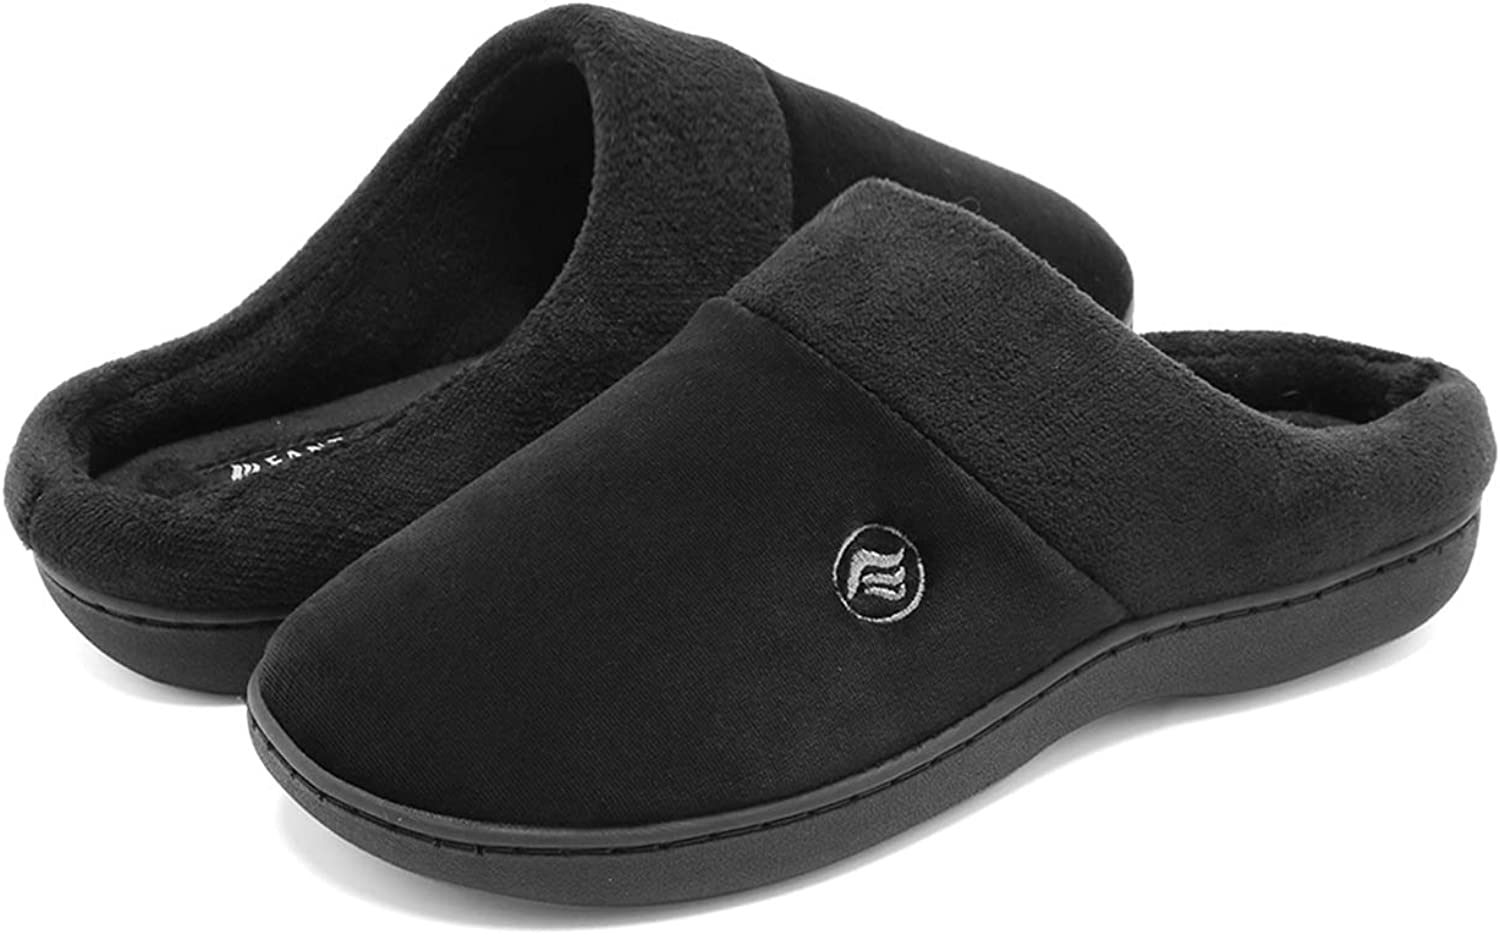 FANTURE Women's Memory Foam Slippers Terry Slip-on Clog Scuff House shoes Indoor & Outdoor Arch Support-U418WMT025-black-36.37